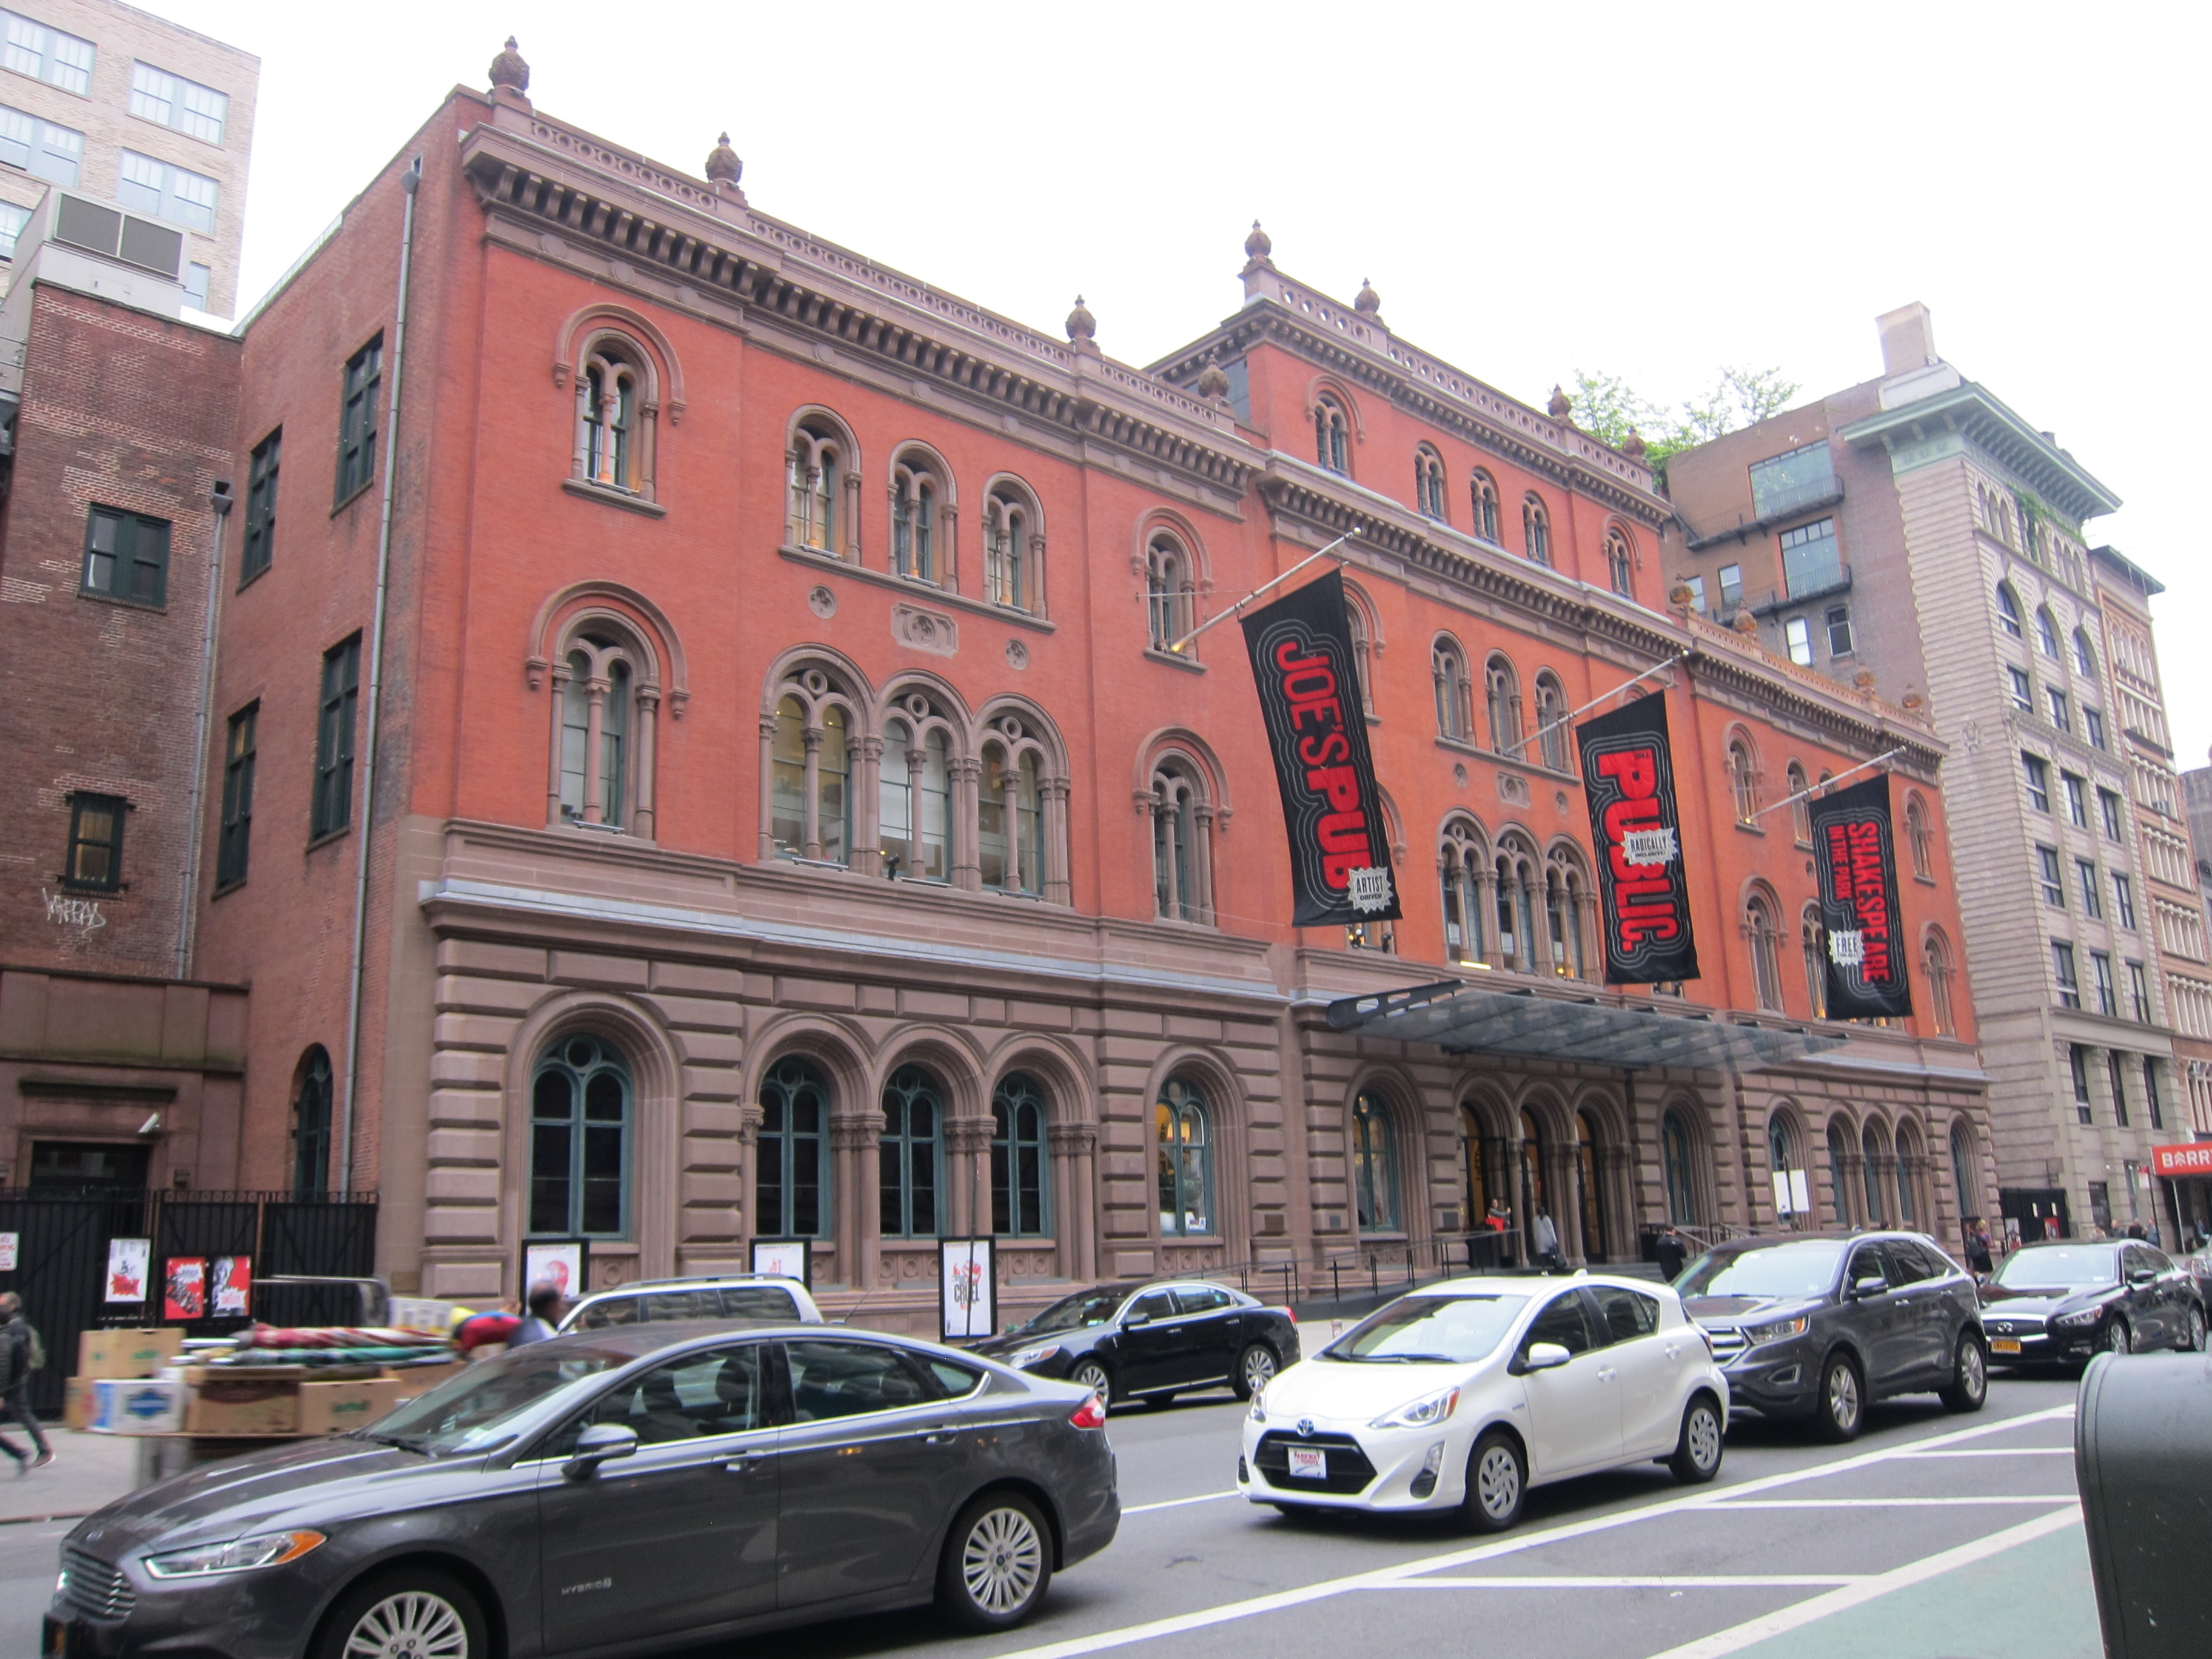 Formerly the Astor Library, Now the Joseph Papp Public Theater